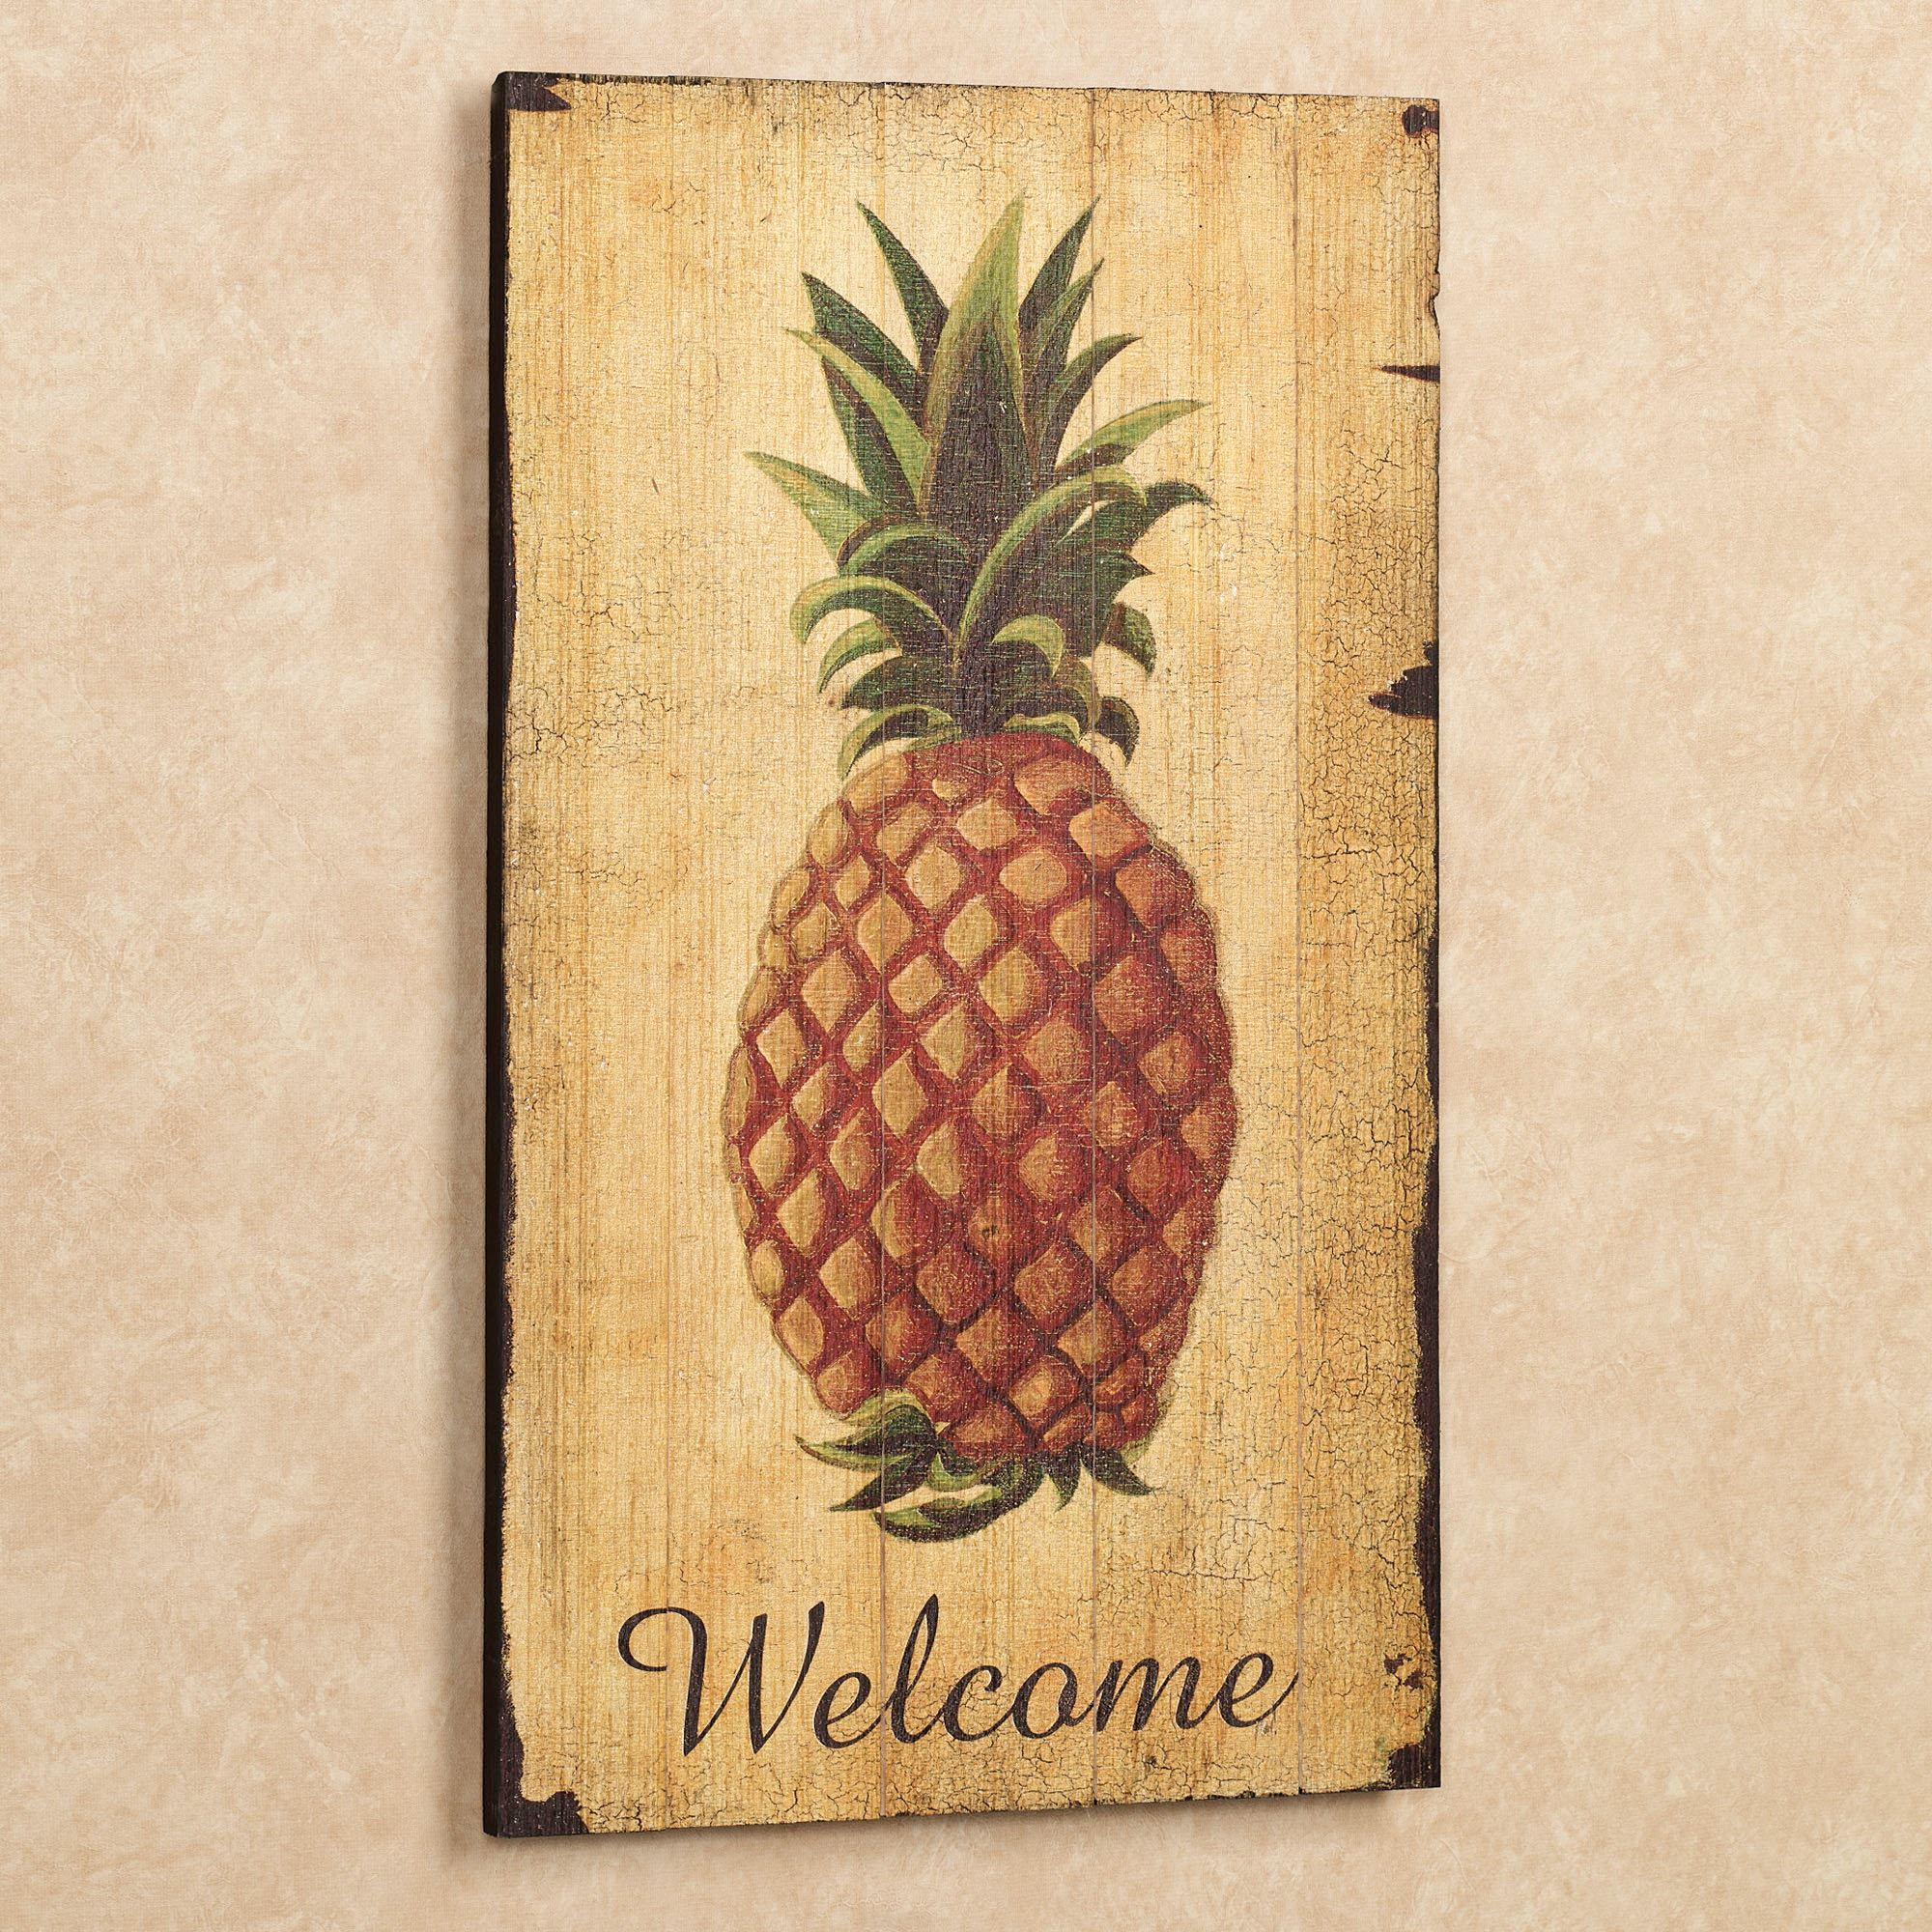 Most Current Pineapple Wall Decor Within Pineapple Vintage Welcome Sign Wall Art (View 11 of 20)